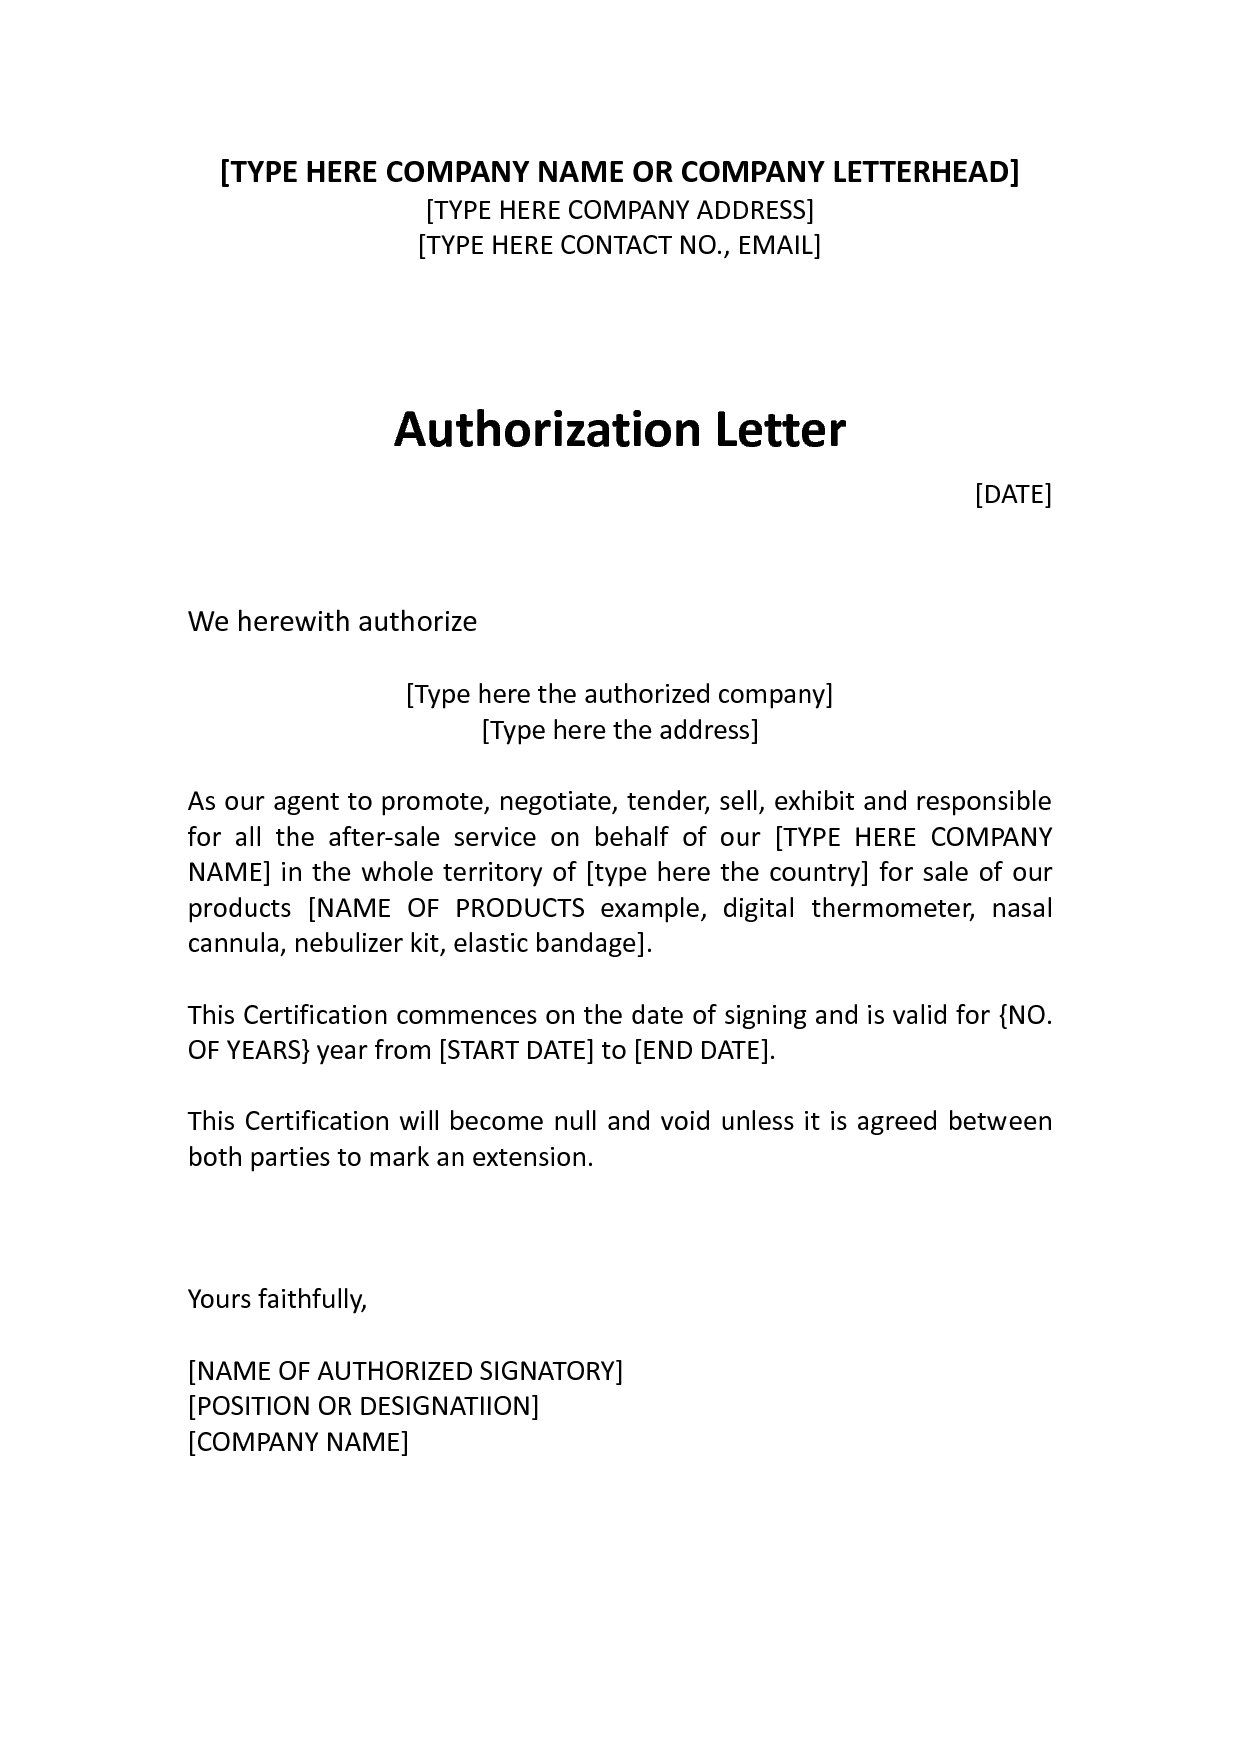 Authorization distributor letter sample distributor dealer authorization distributor letter sample distributor dealer authorization letter given by a company to its distributor or dealer spiritdancerdesigns Choice Image